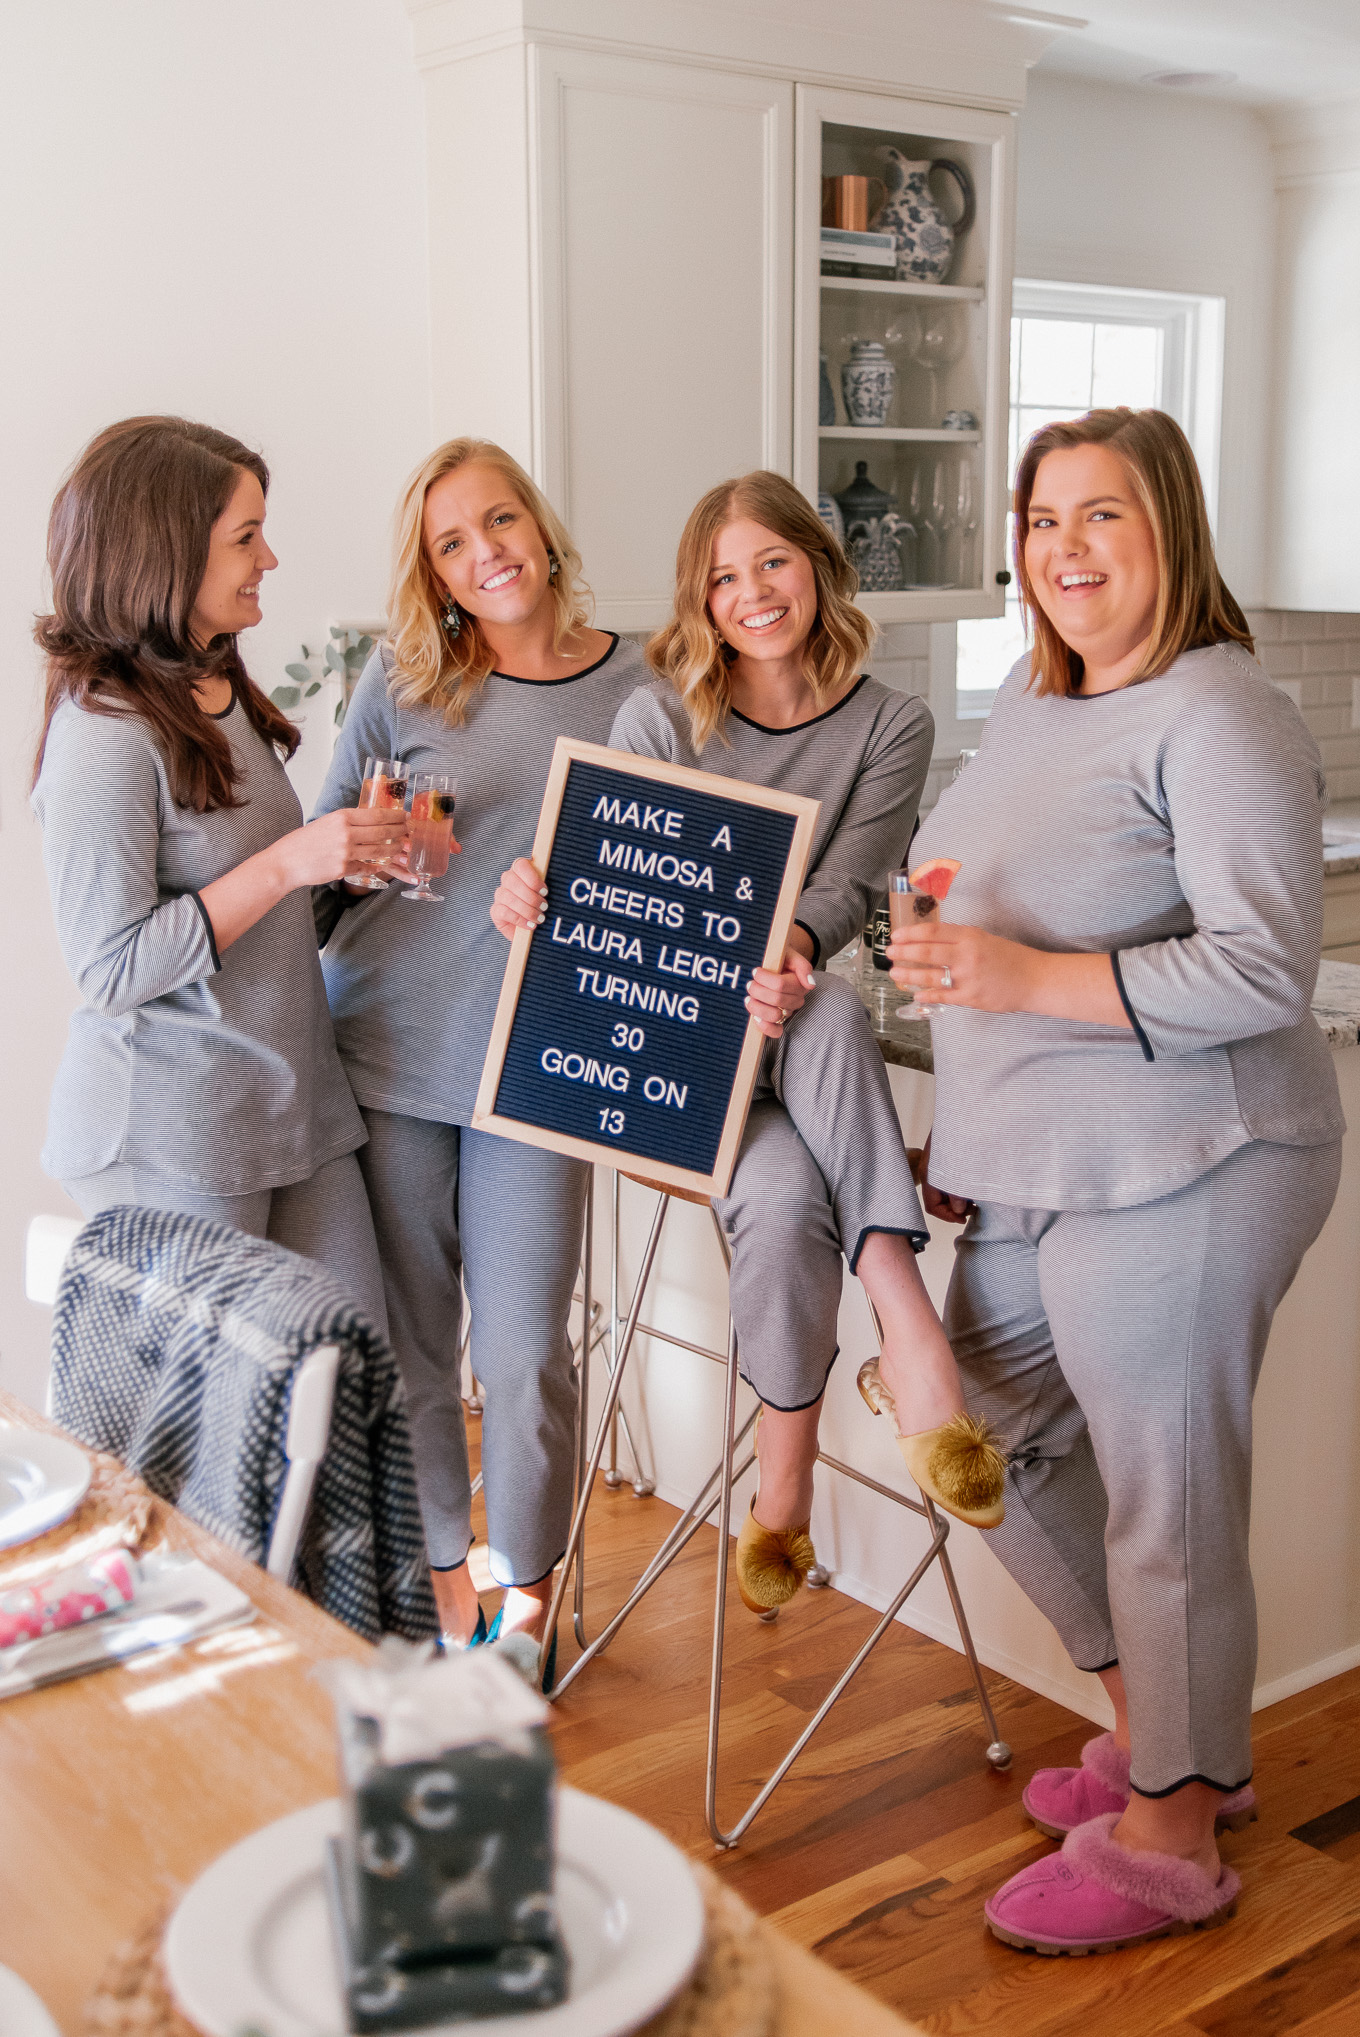 30 Going on 13 Birthday Party | Grown Up Pajama Party | Louella Reese